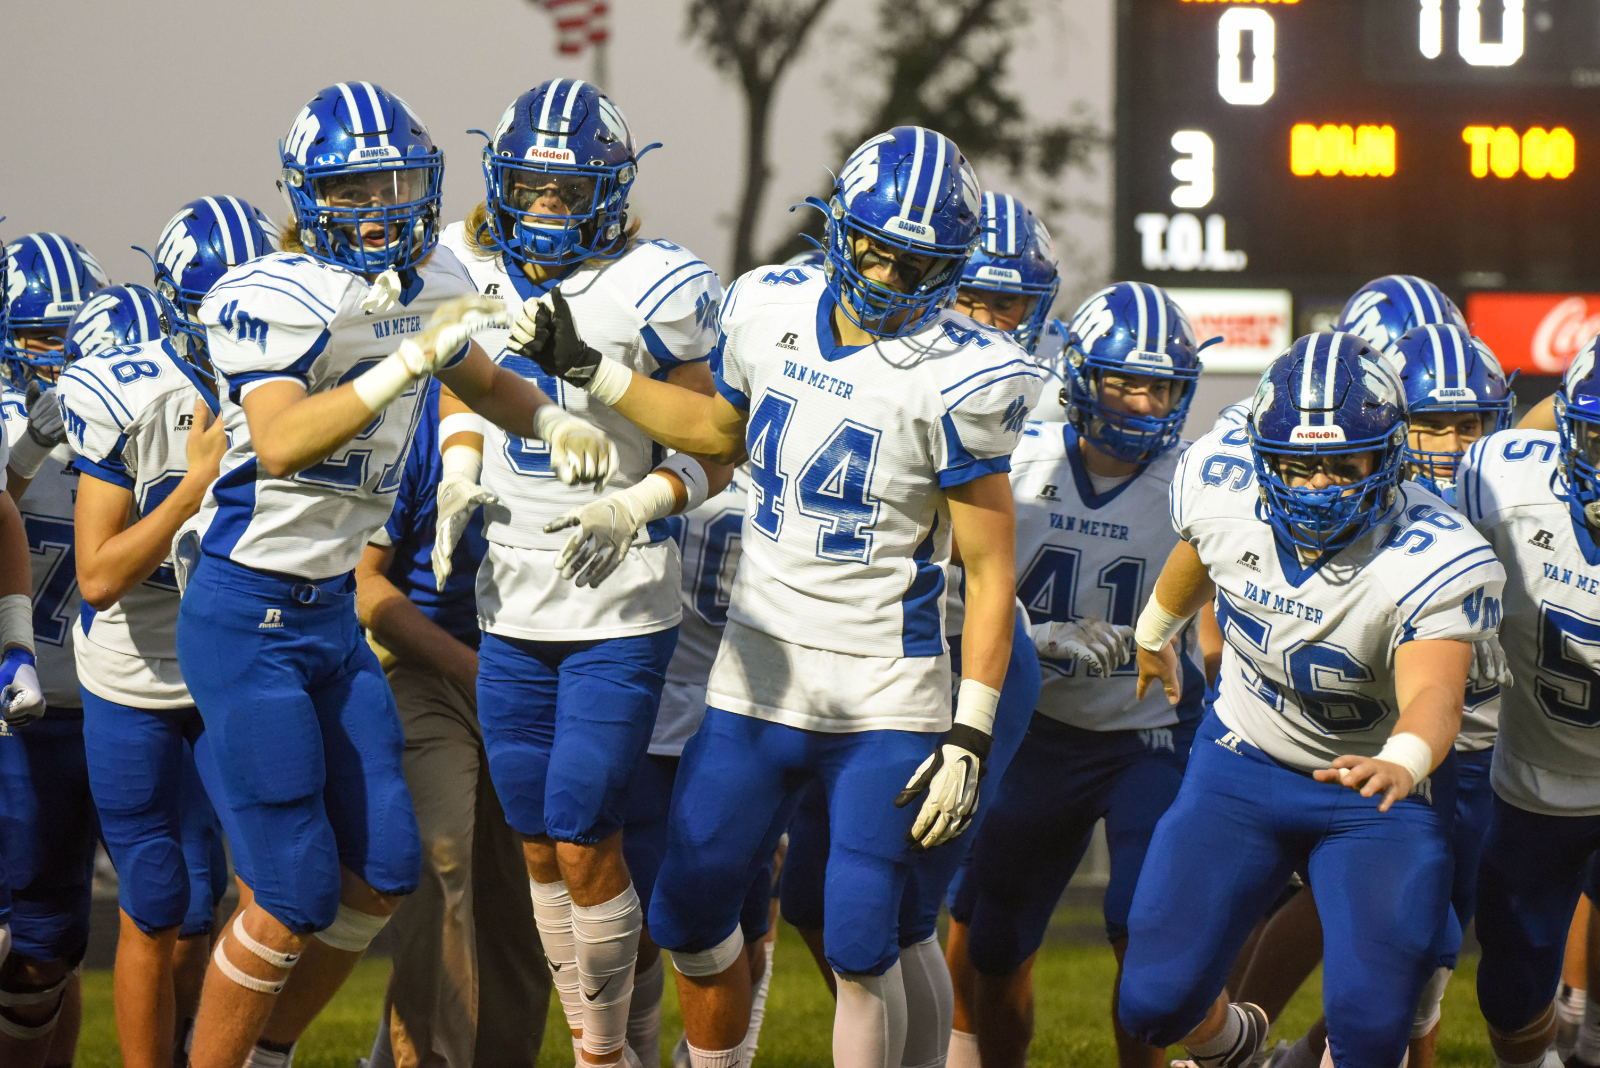 2nd Round Playoffs: Van Meter vs. AC/GC – Friday, Oct 23 @ 7:00 PM (Guidelines & Live Streaming Info for Fans)